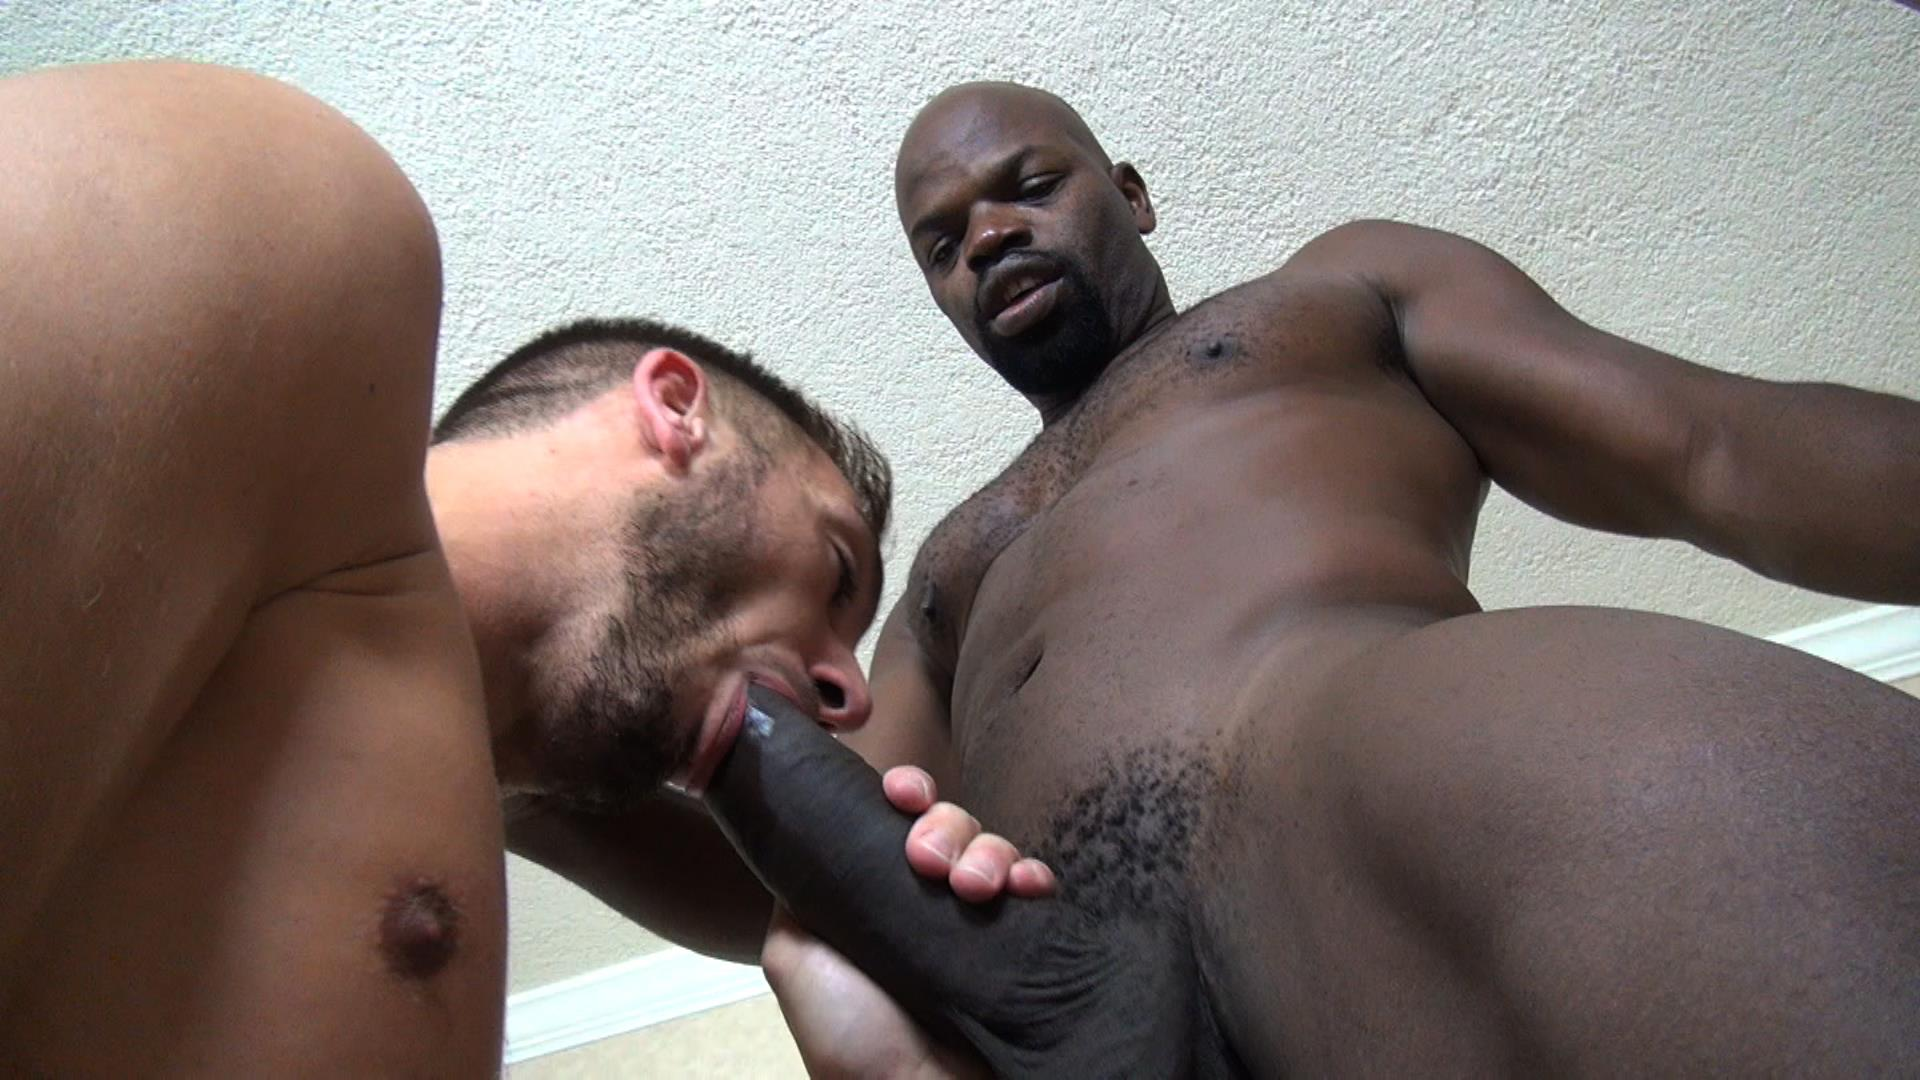 Gay interracial big cock blowjob and anal